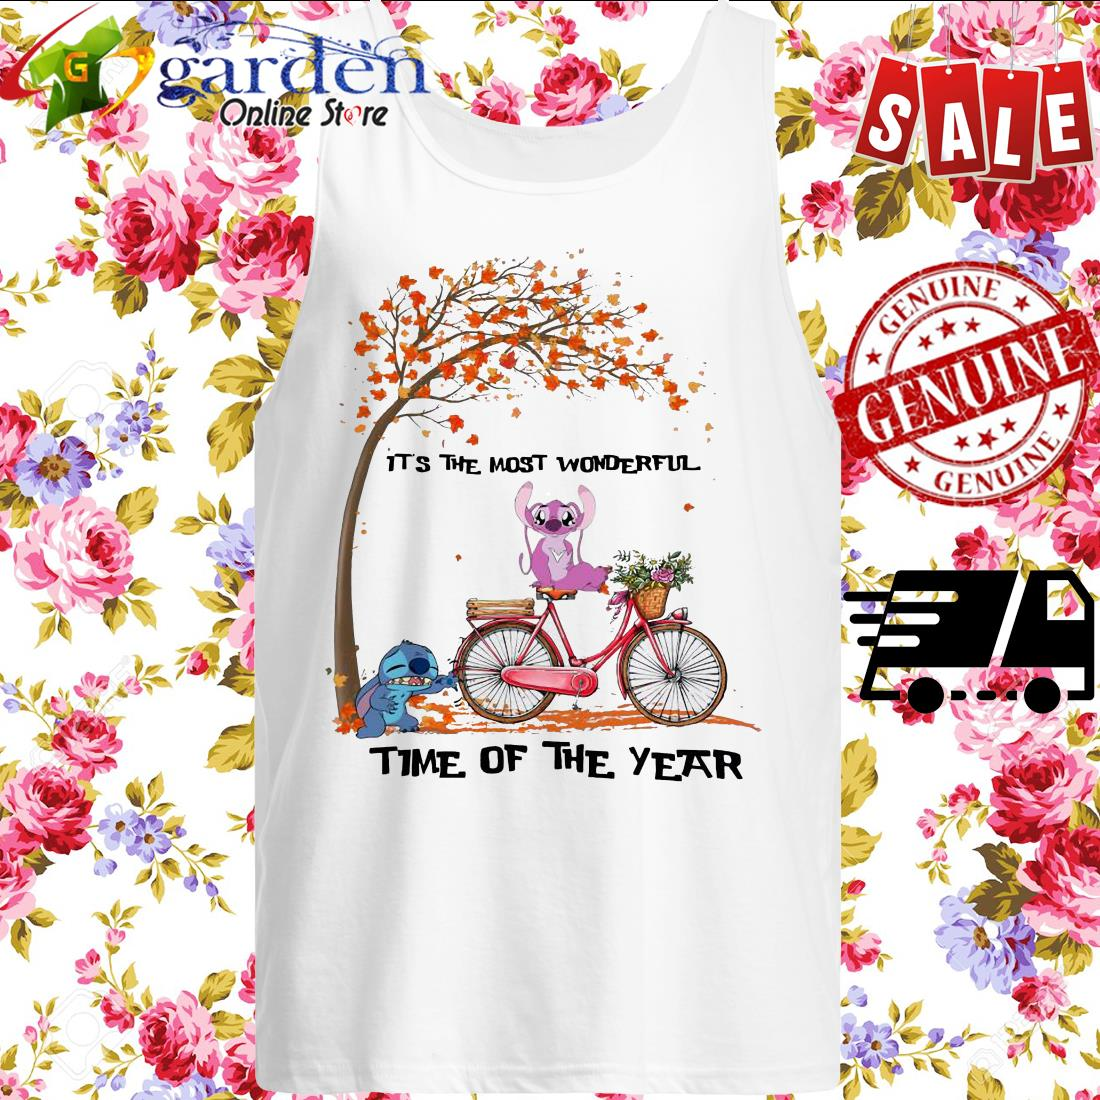 Stitch and angel it's the most wonderful time of the year tank top